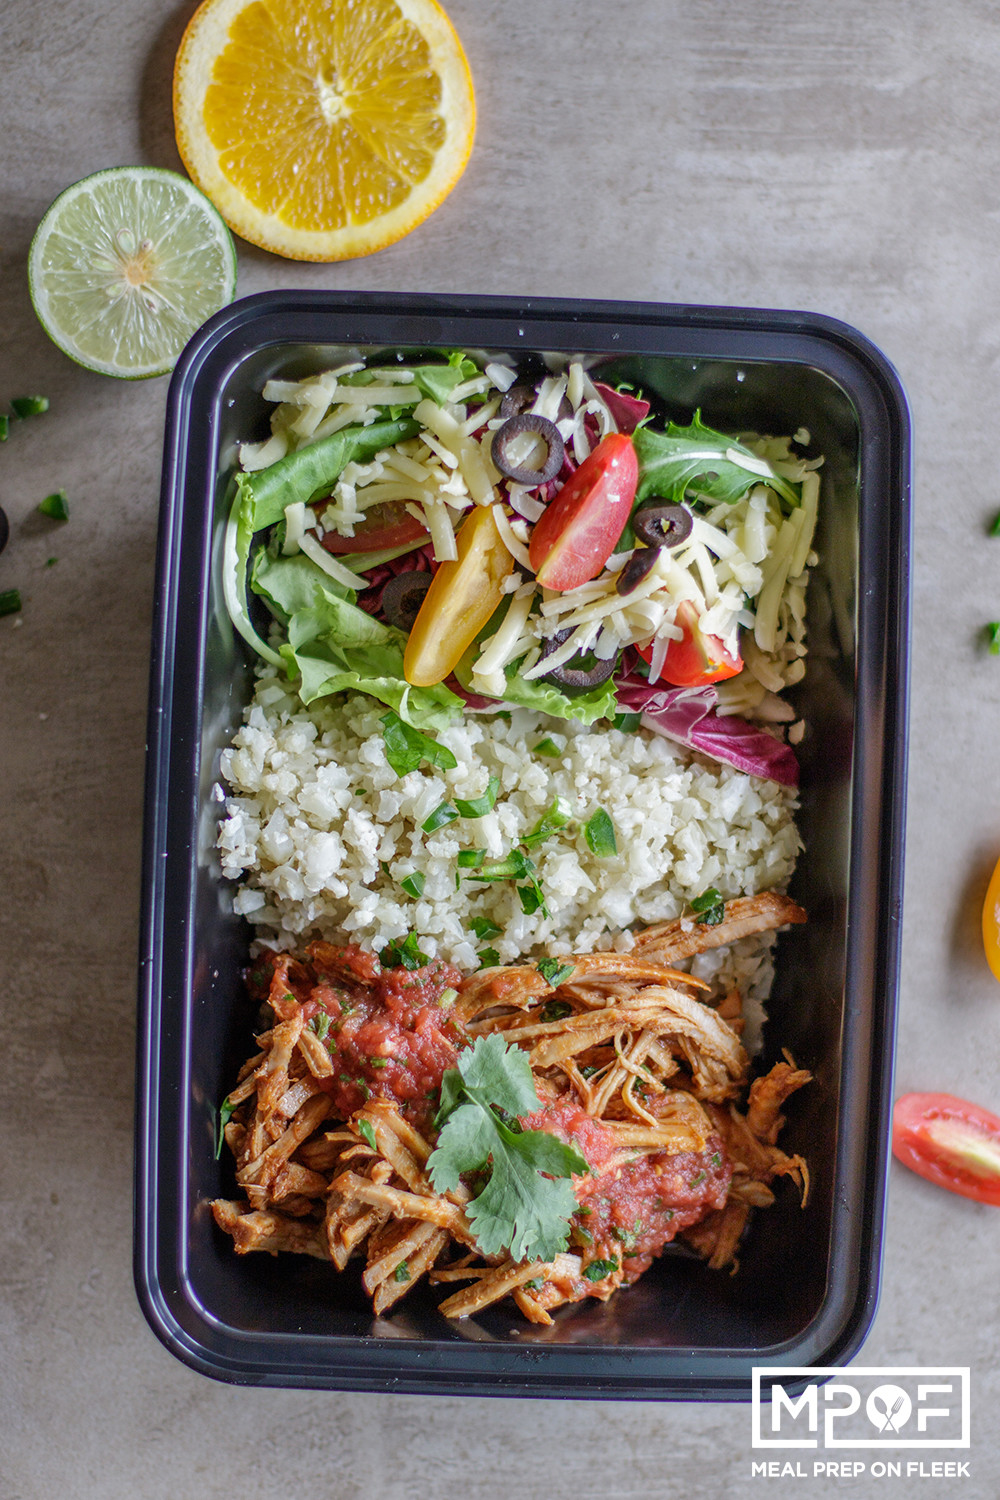 Slow Cooker Keto Meals  Slow Cooker Keto Pork Carnitas Bowls Meal Prep on Fleek™